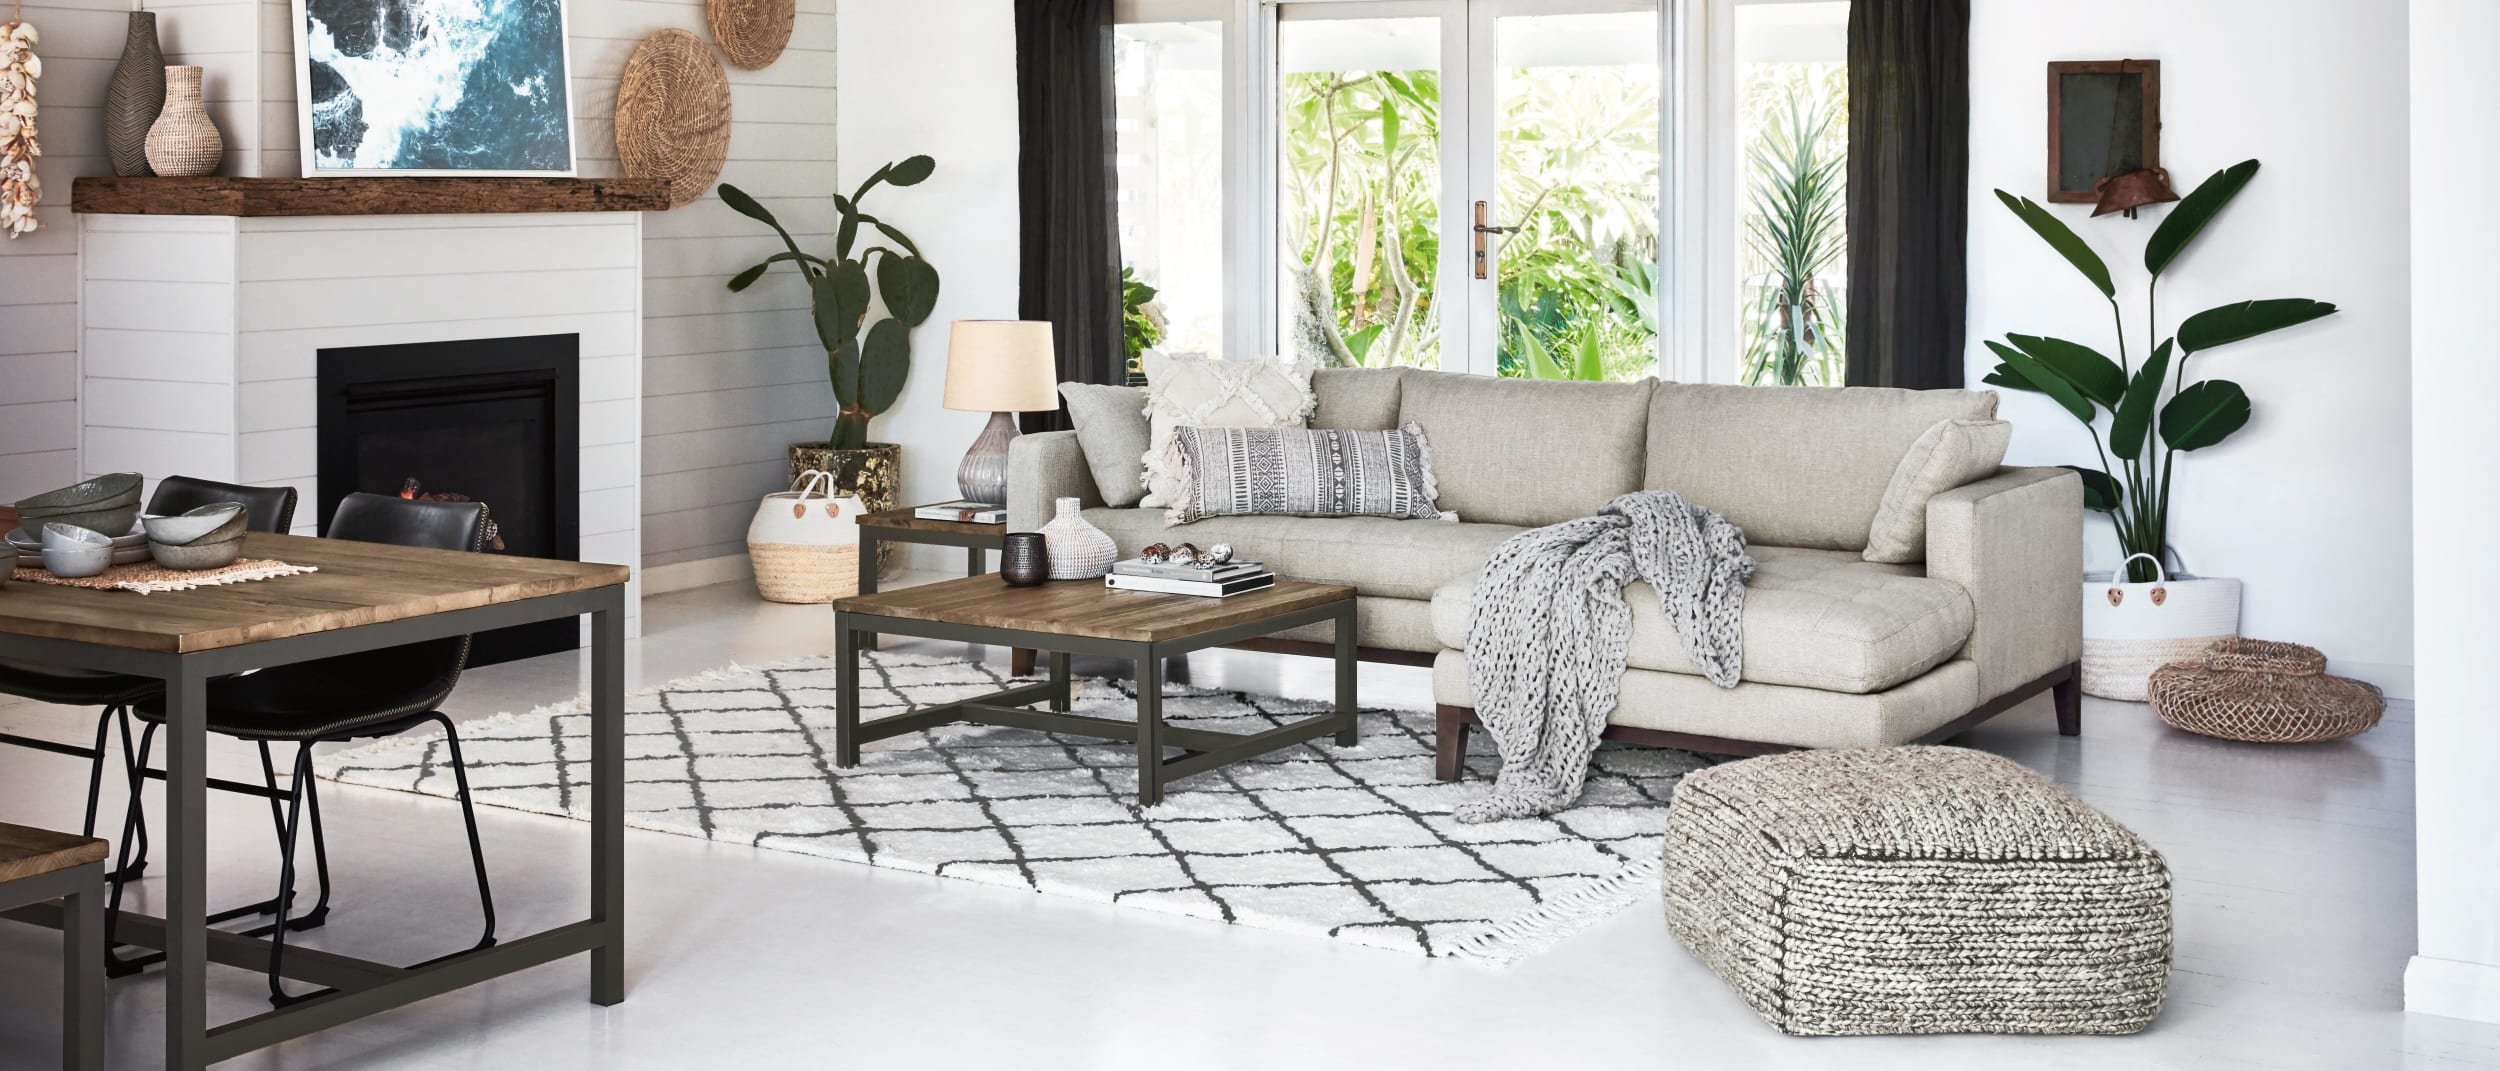 Design Your Own Living Room With Freedom